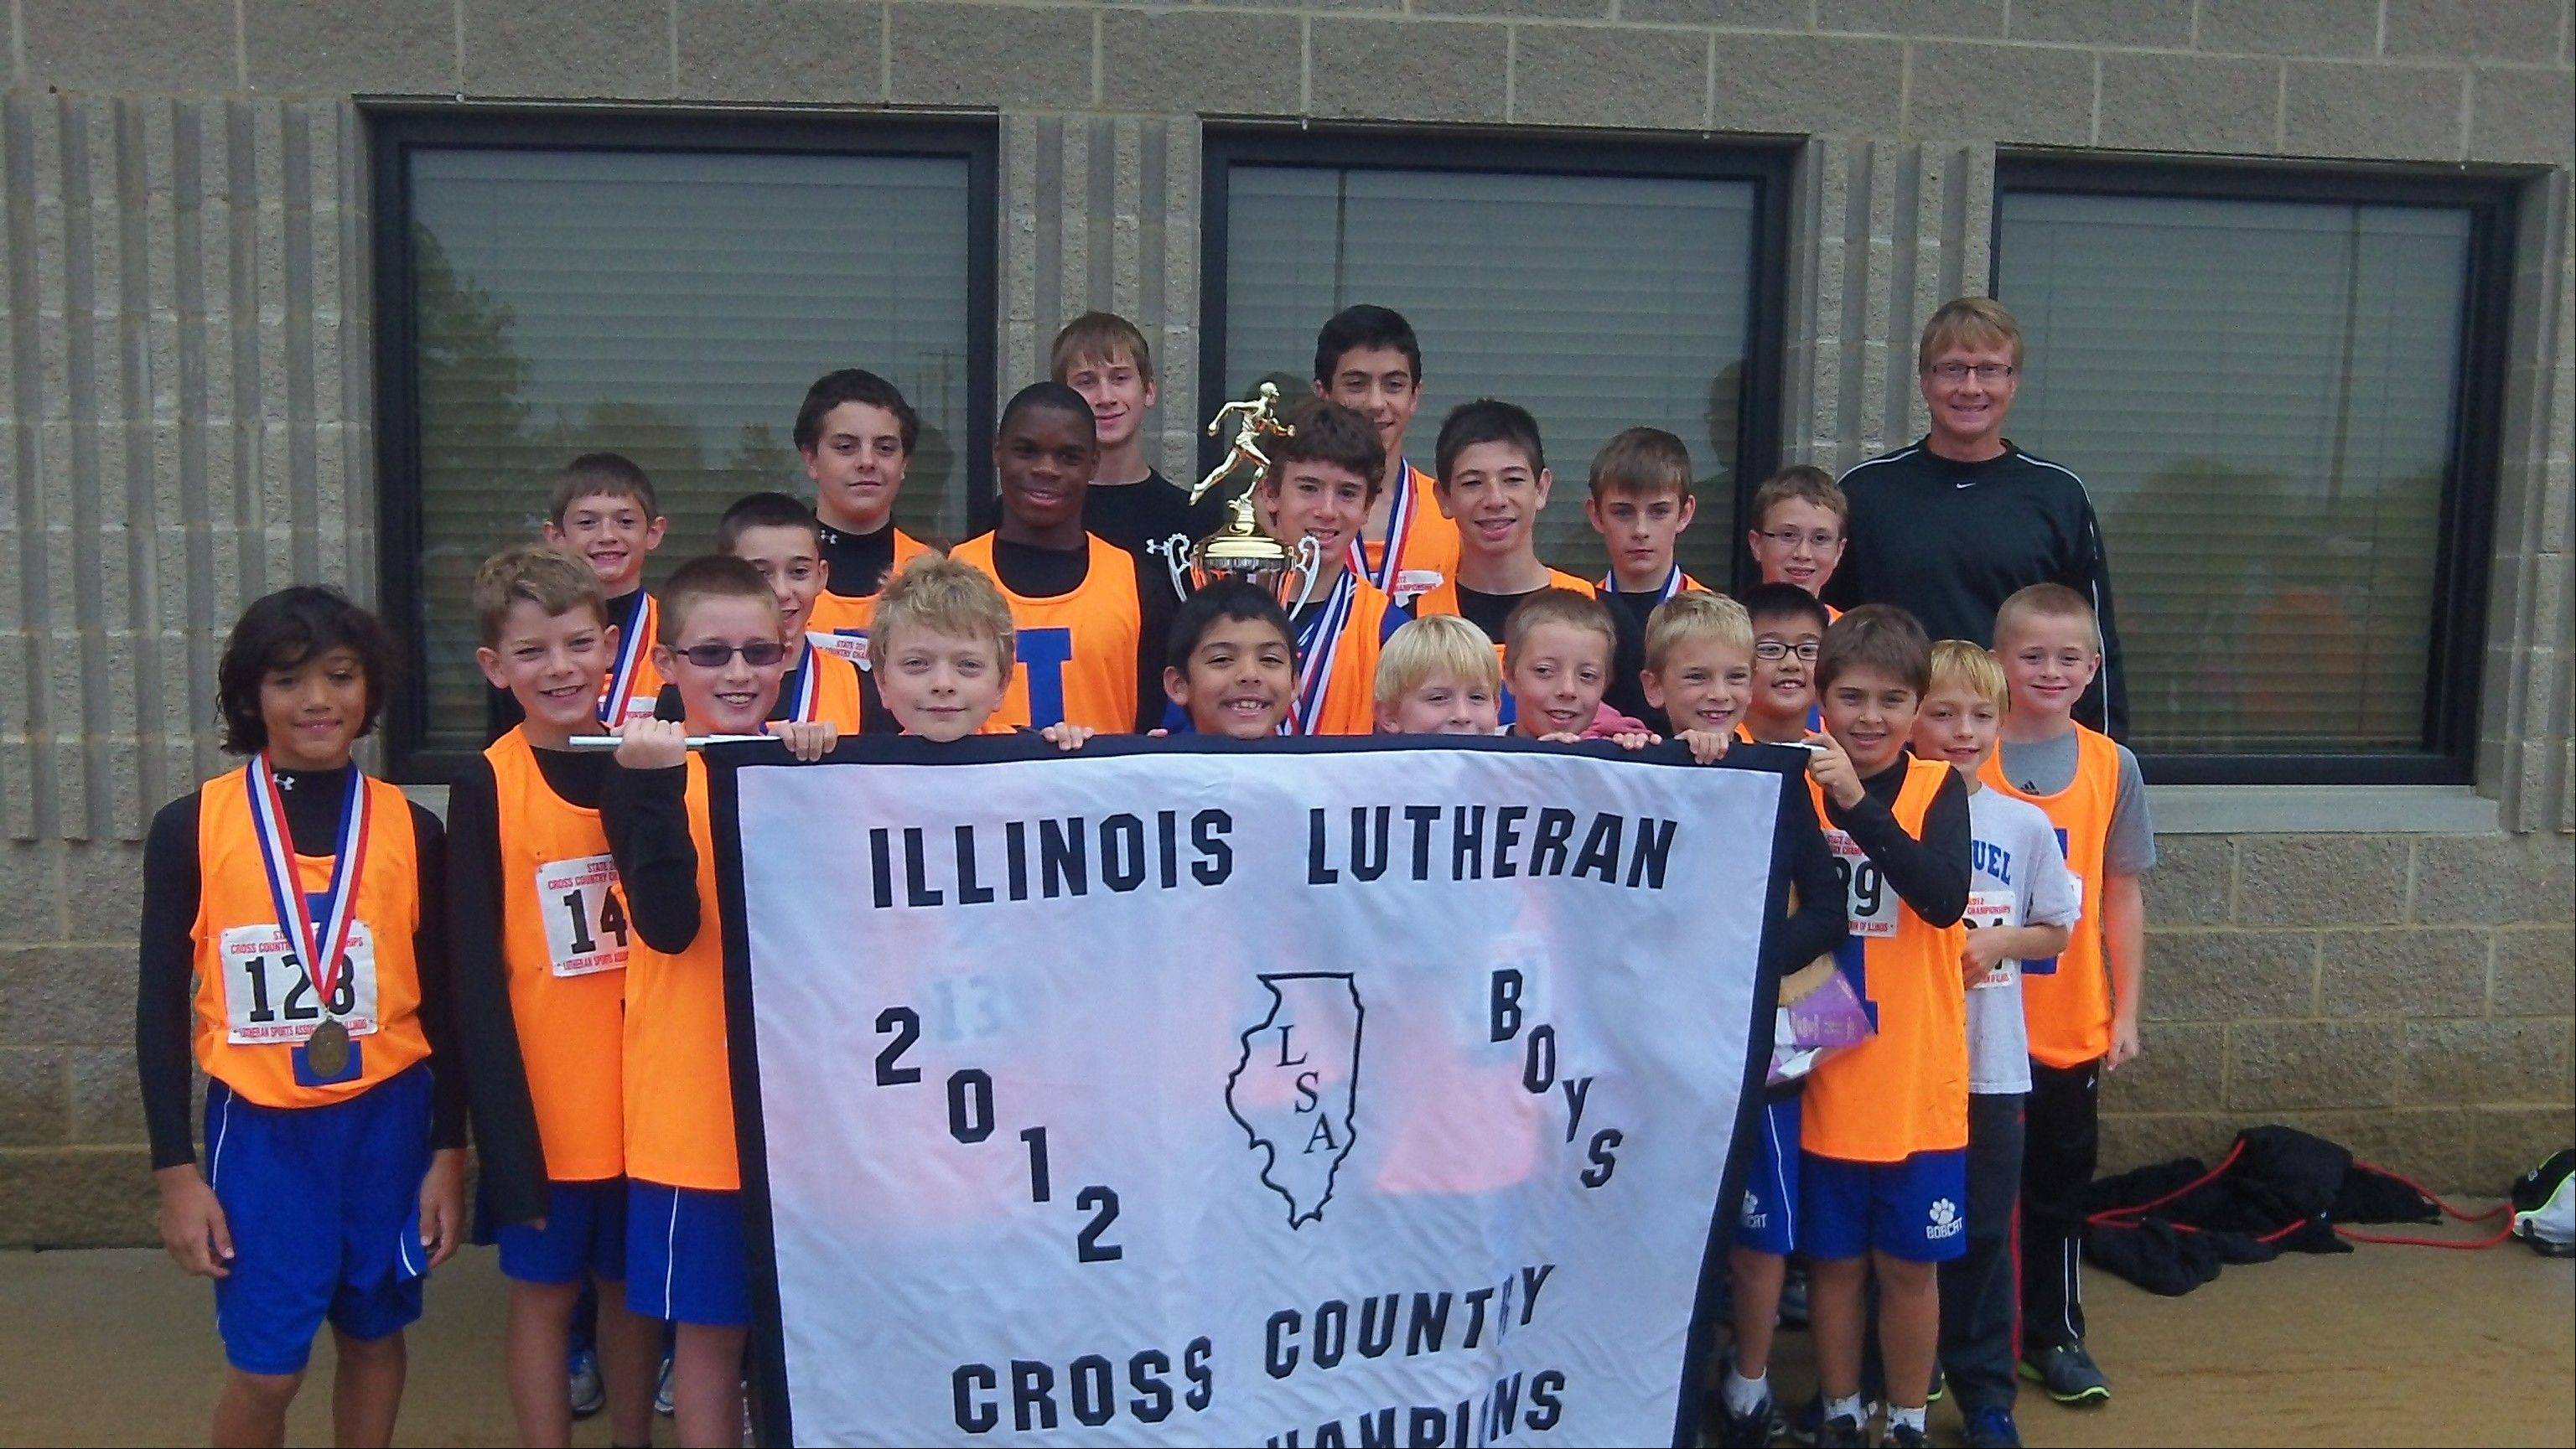 The boys cross country team at Immanuel Lutheran School in Palatine took first in a statewide meet of Lutheran schools.